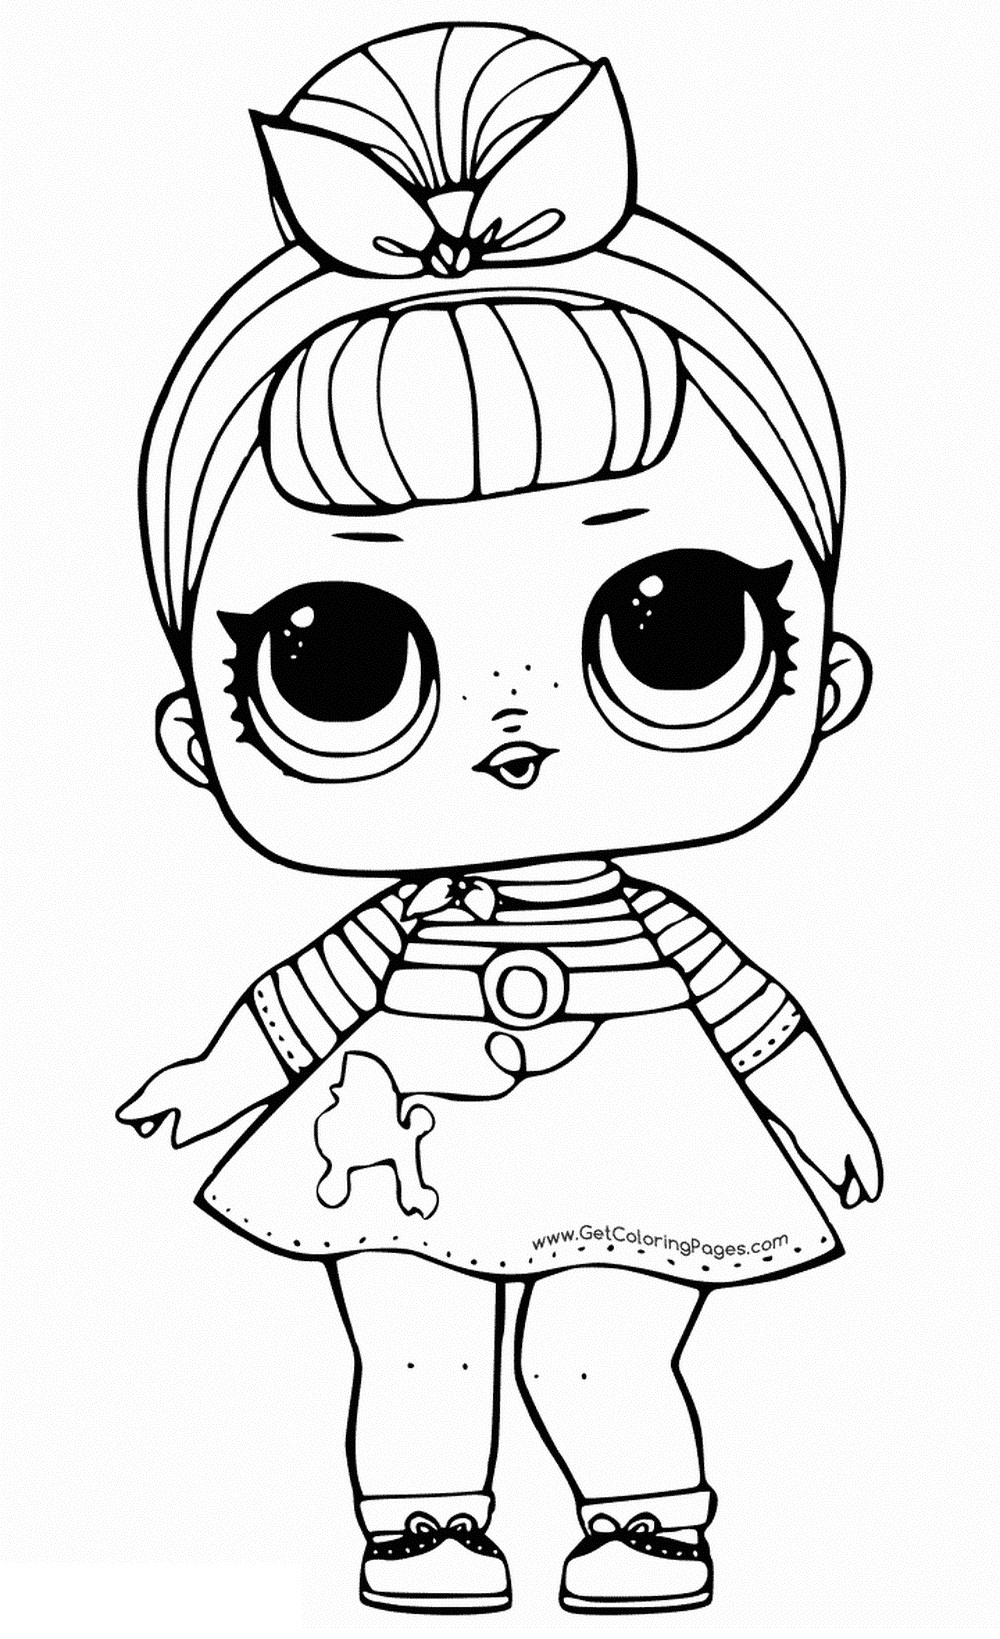 coloring template printable lol colouring pages 30 free printable lol surprise doll coloring pages pages coloring printable lol template colouring